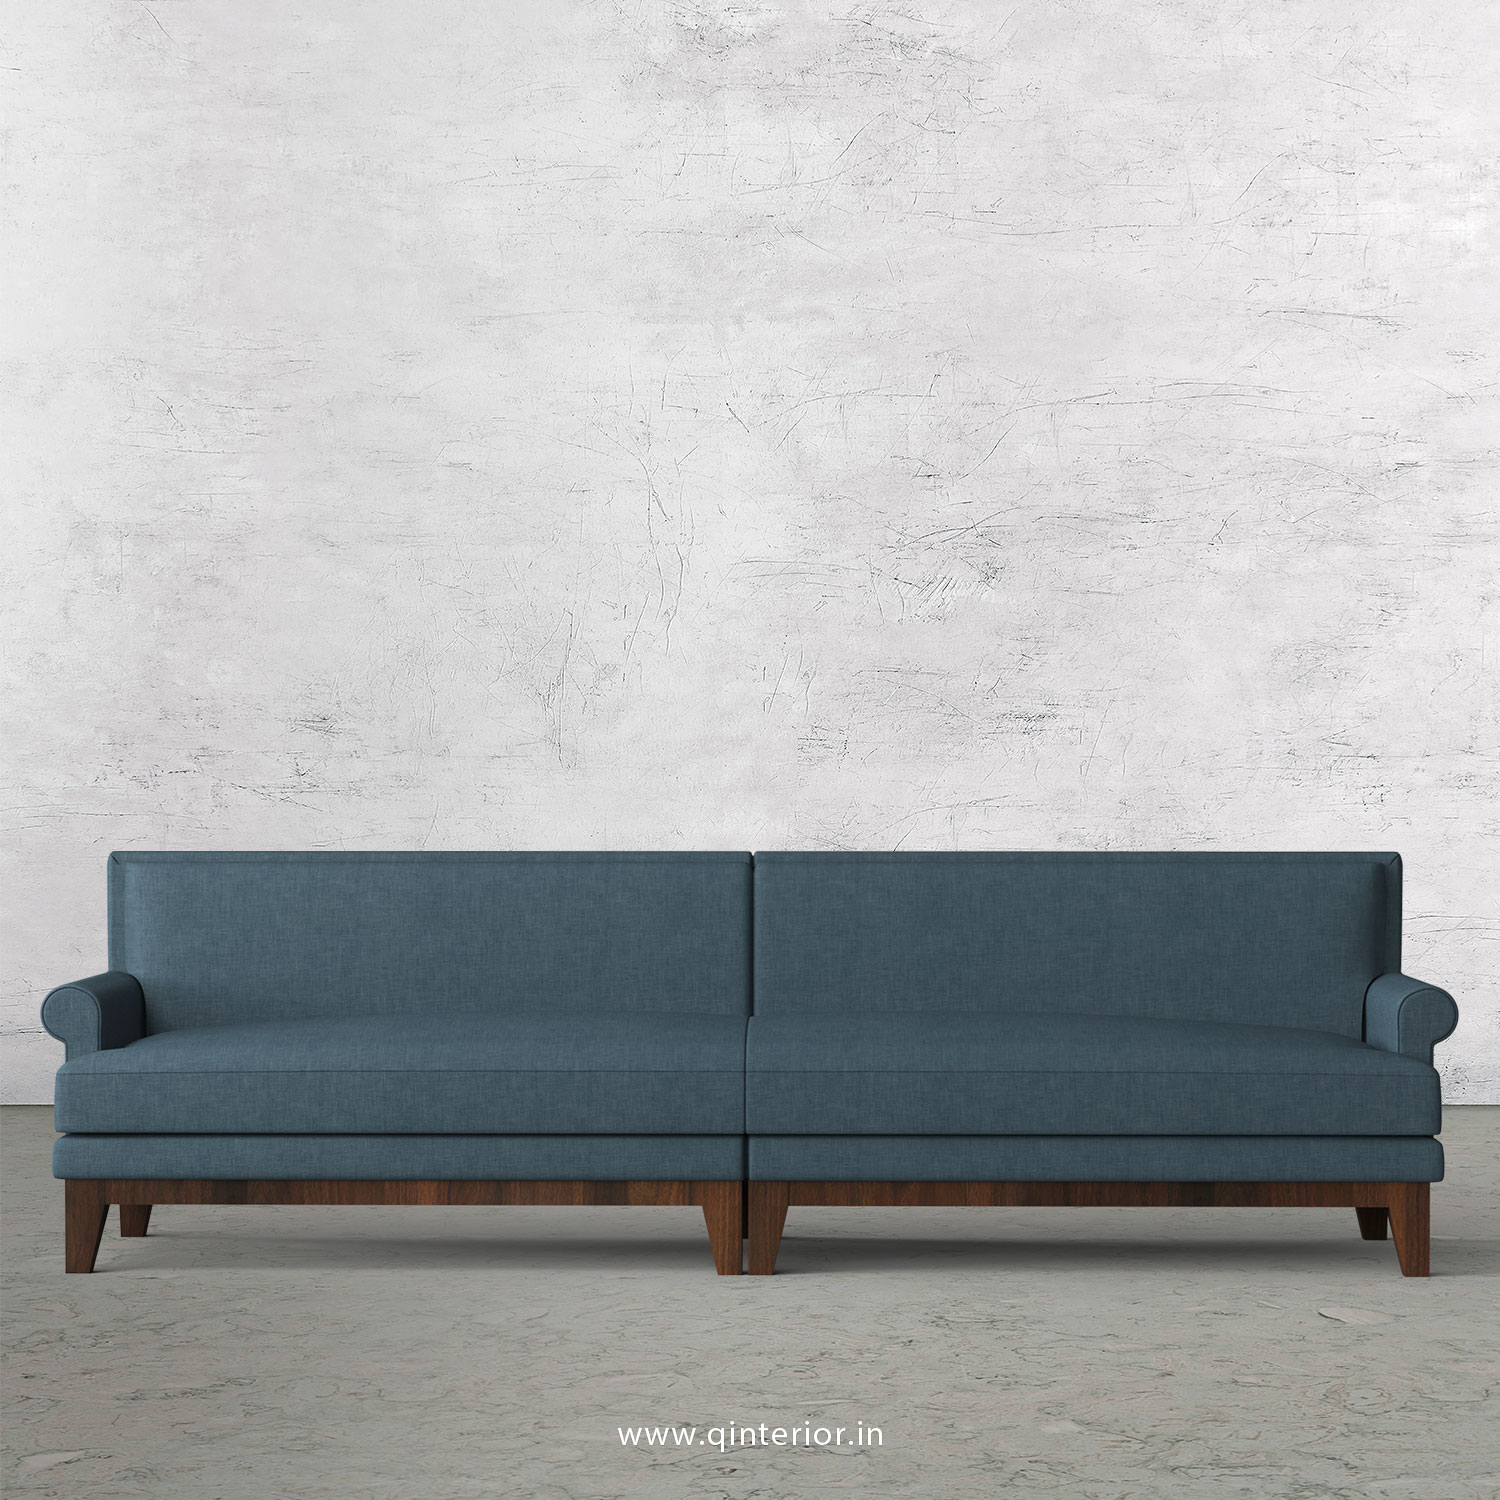 Aviana 4 Seater Sofa in Cotton Plain - SFA001 CP14